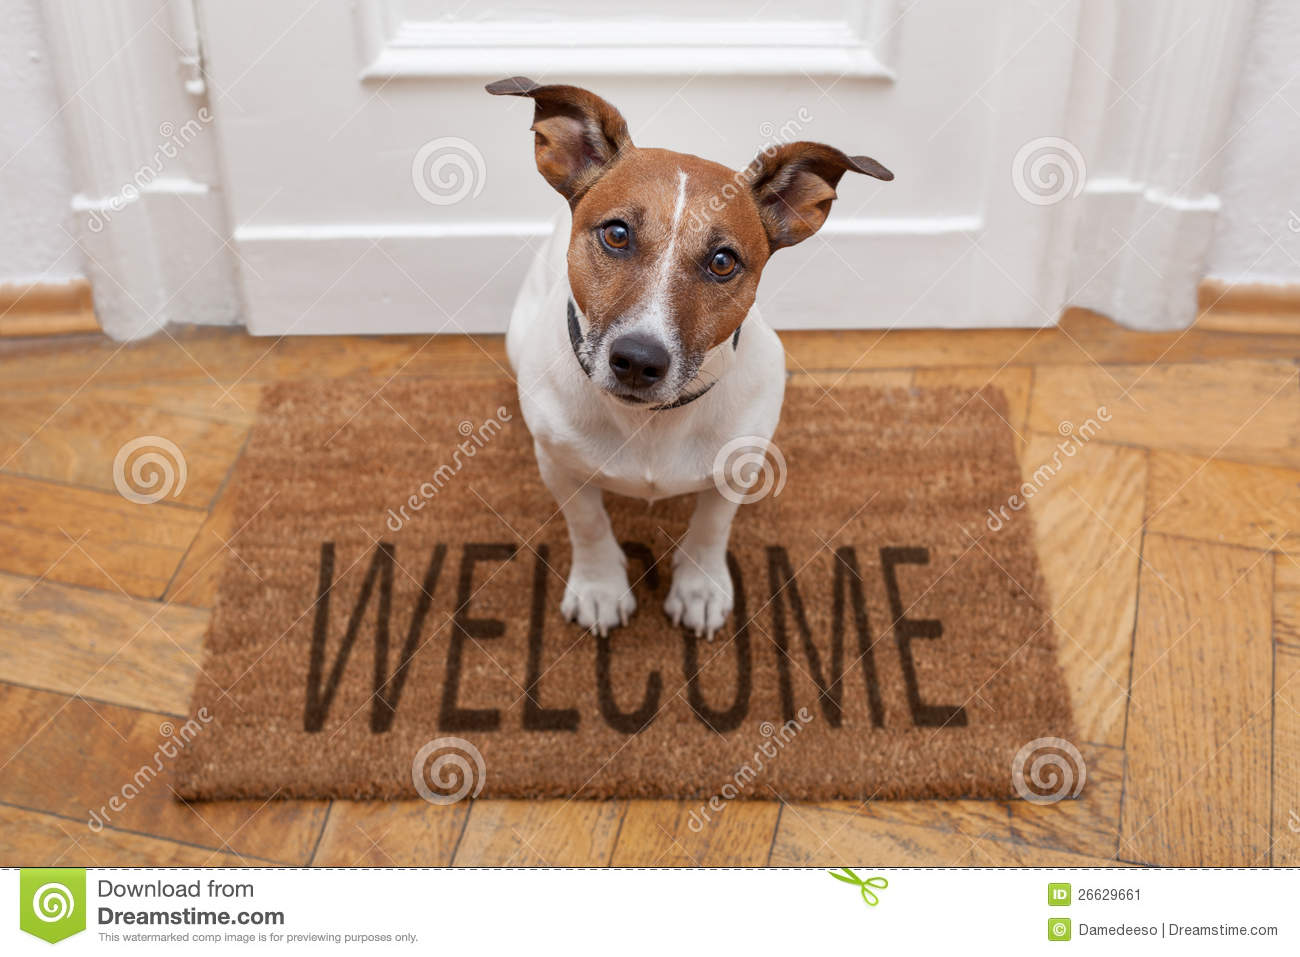 Welcome Stock Photos 89254 Images Printed Circuit Board Pictures Free Use Image 042054 By Freefoto Dog Home On Brown Mat